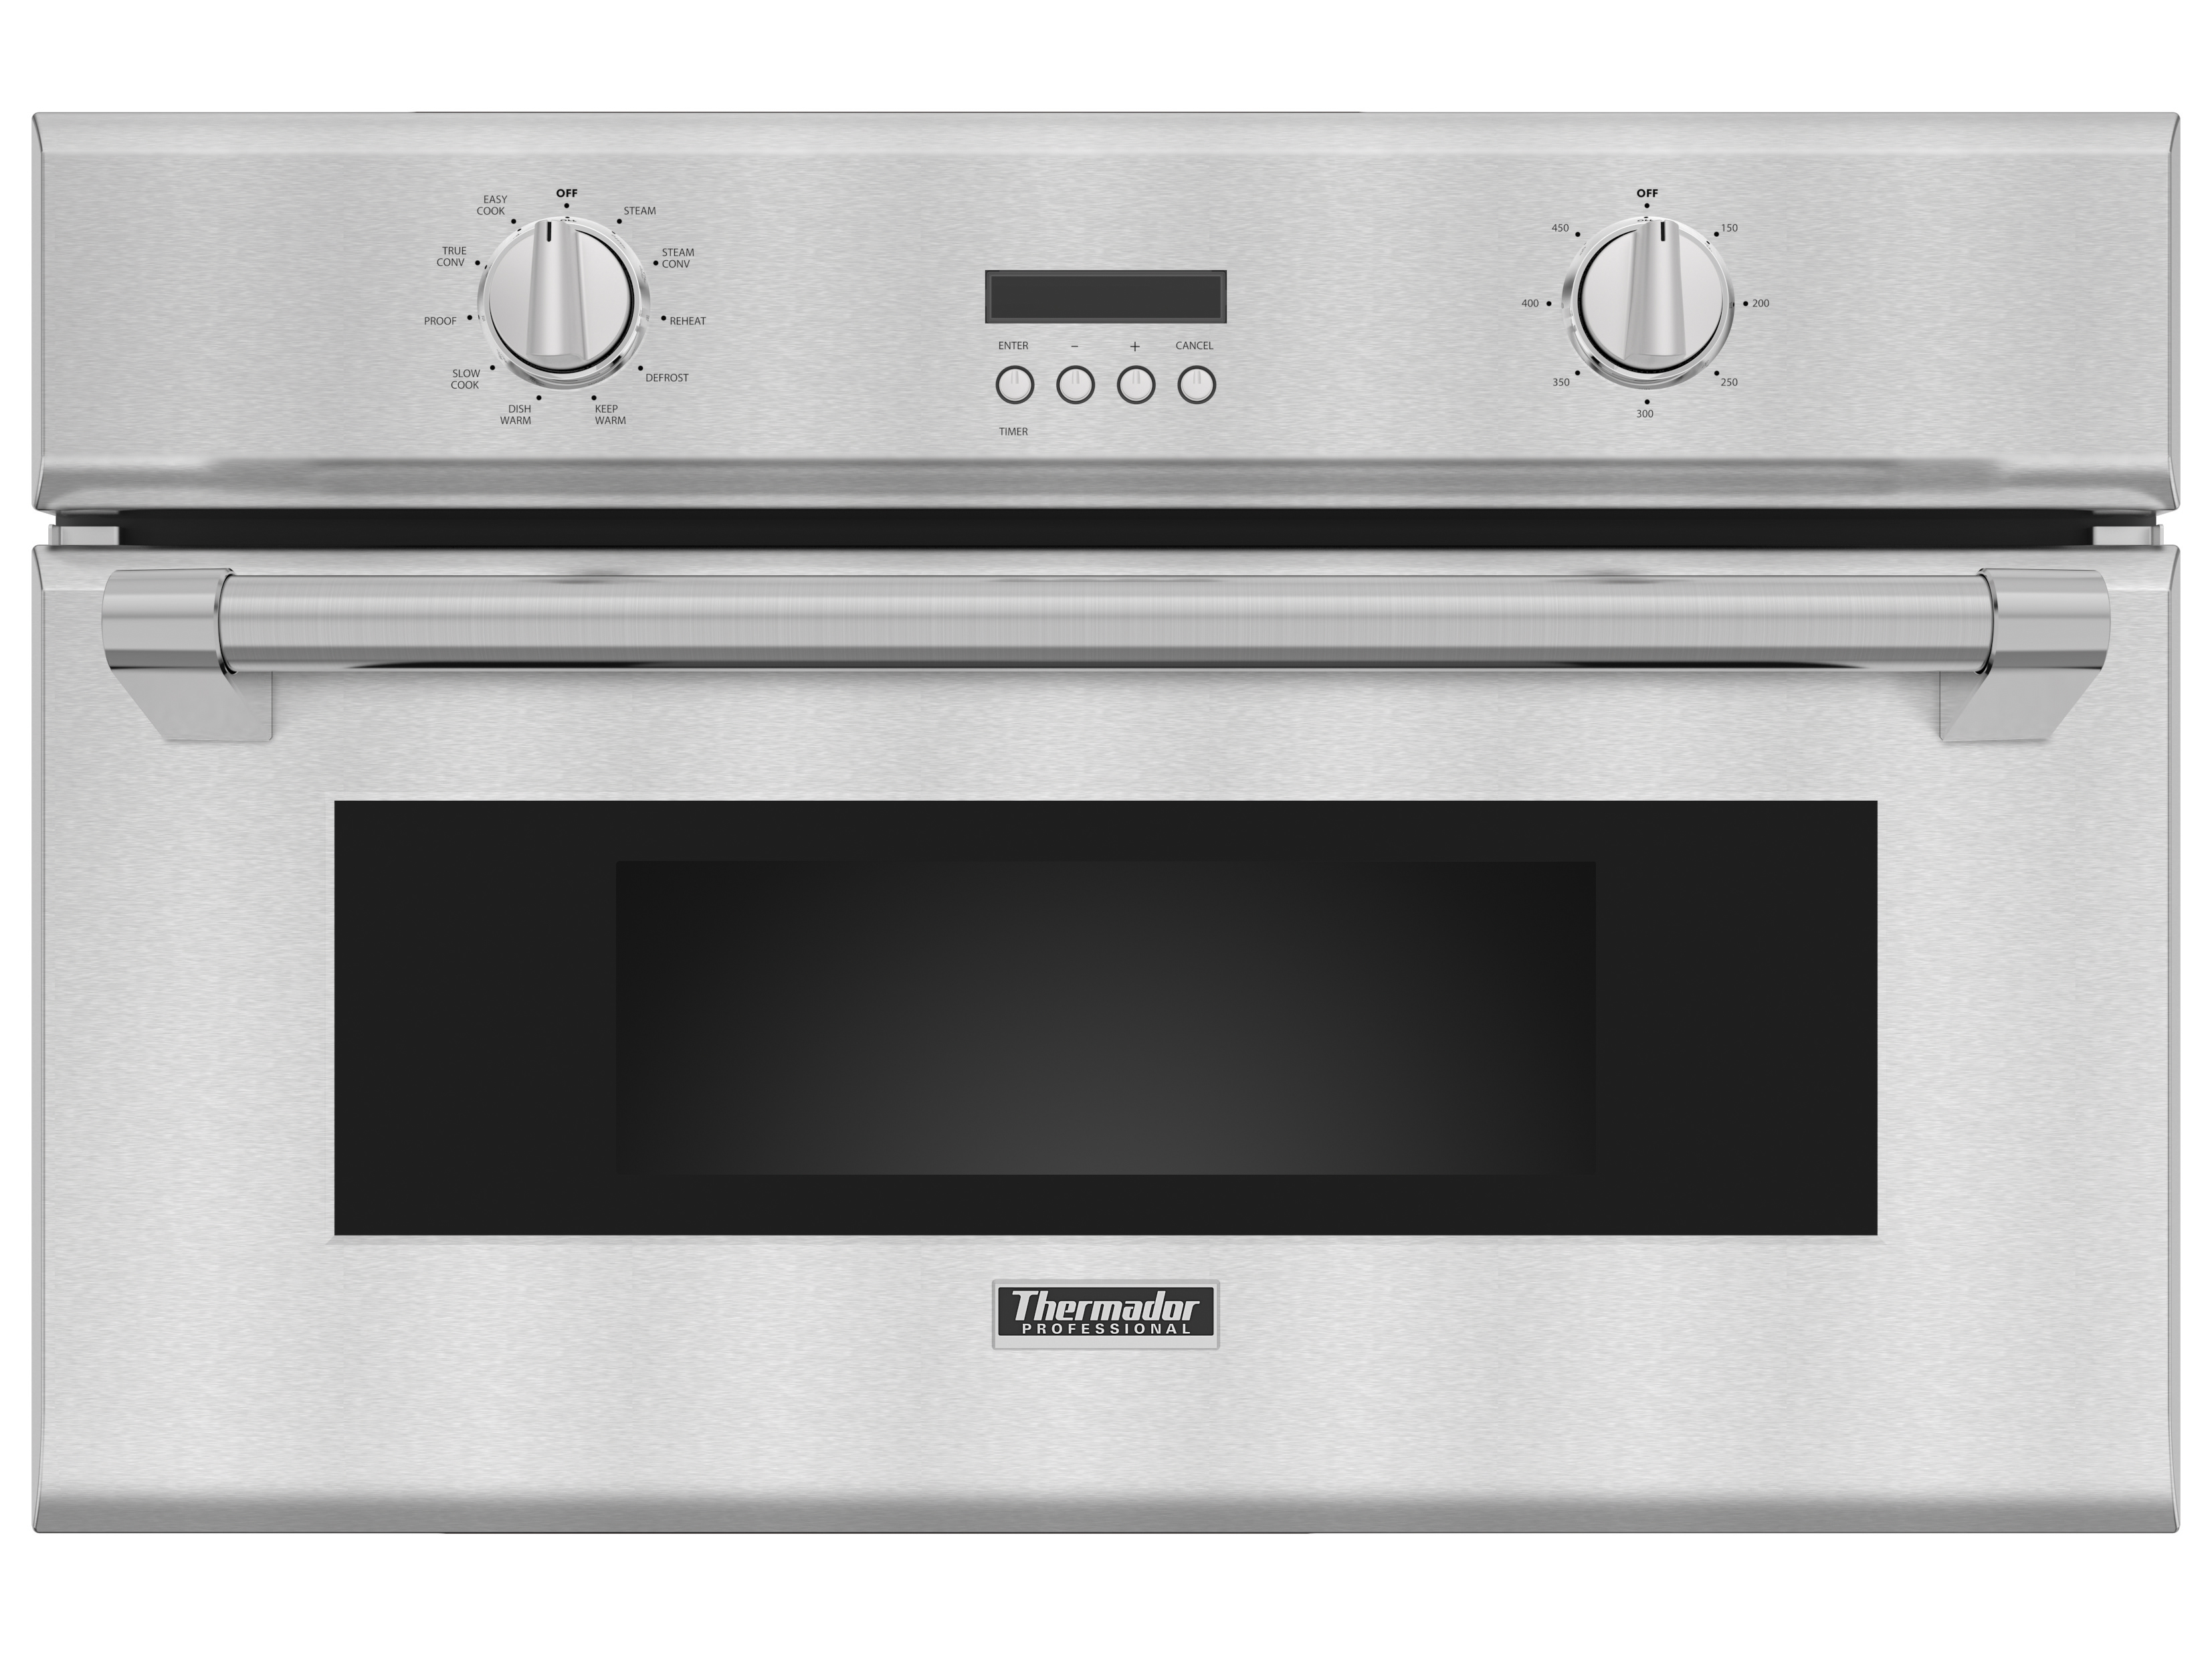 Built In Pro Steam and Convection Oven